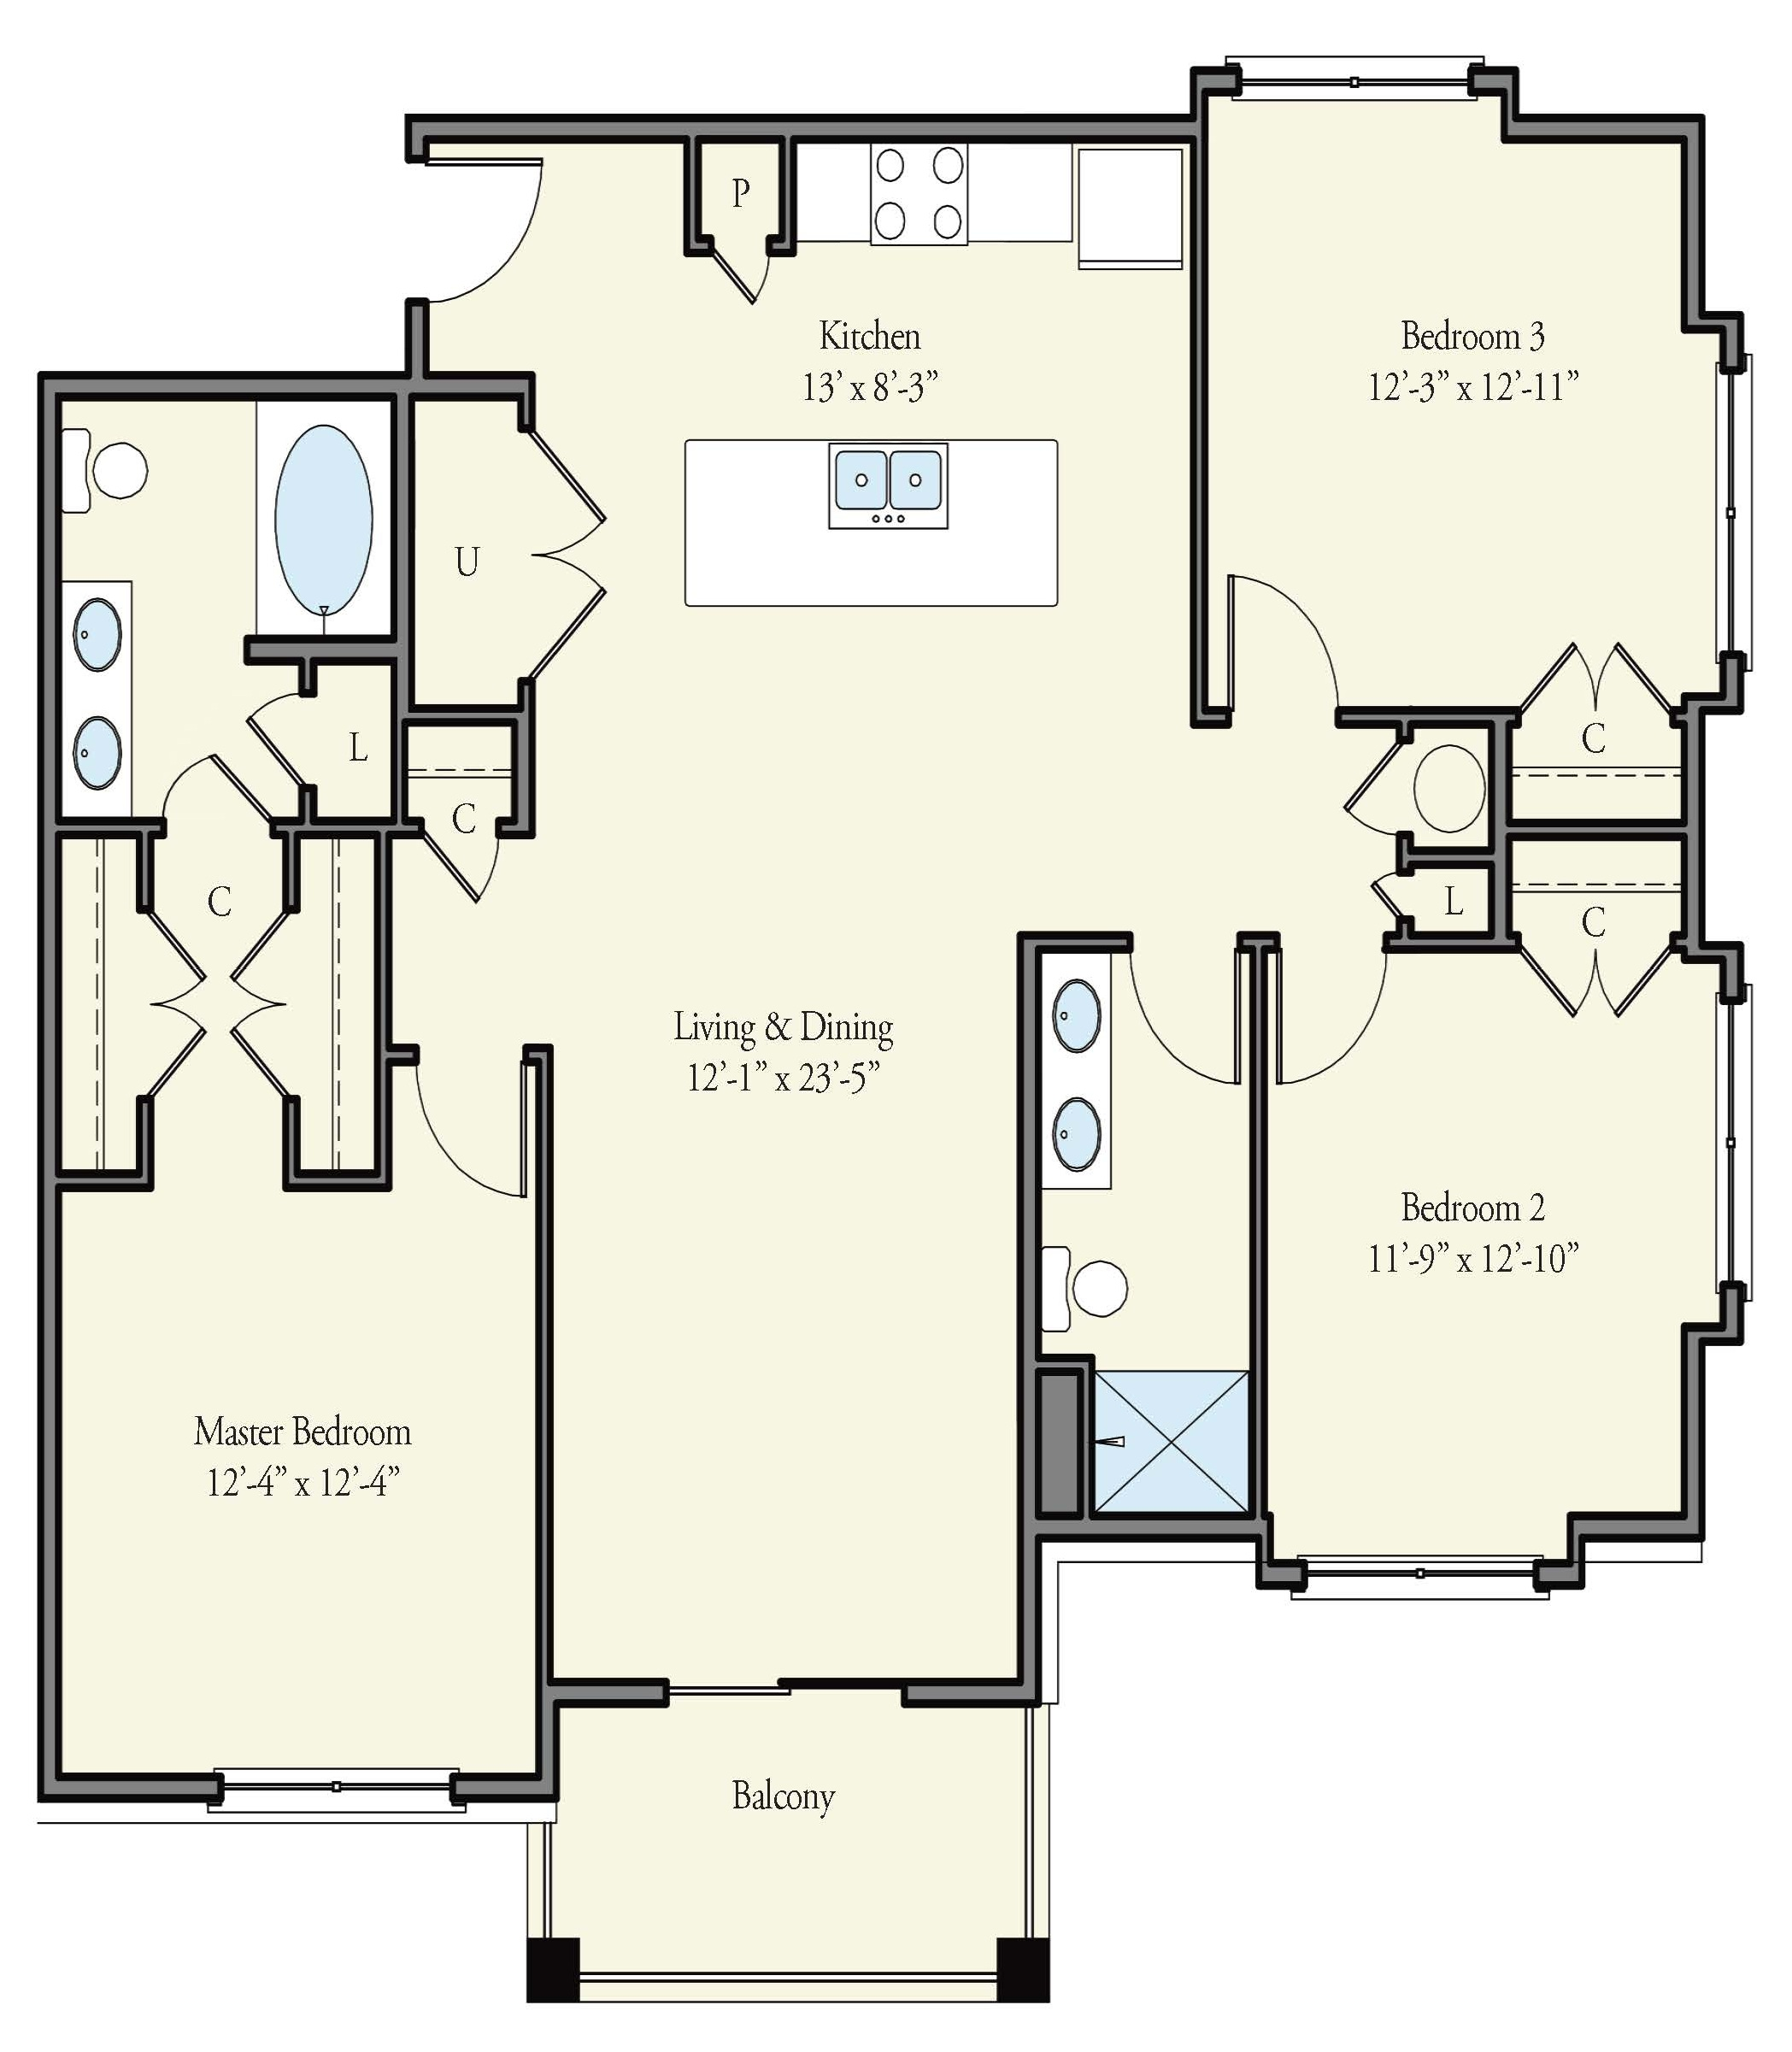 Floorplan - Edinburg image